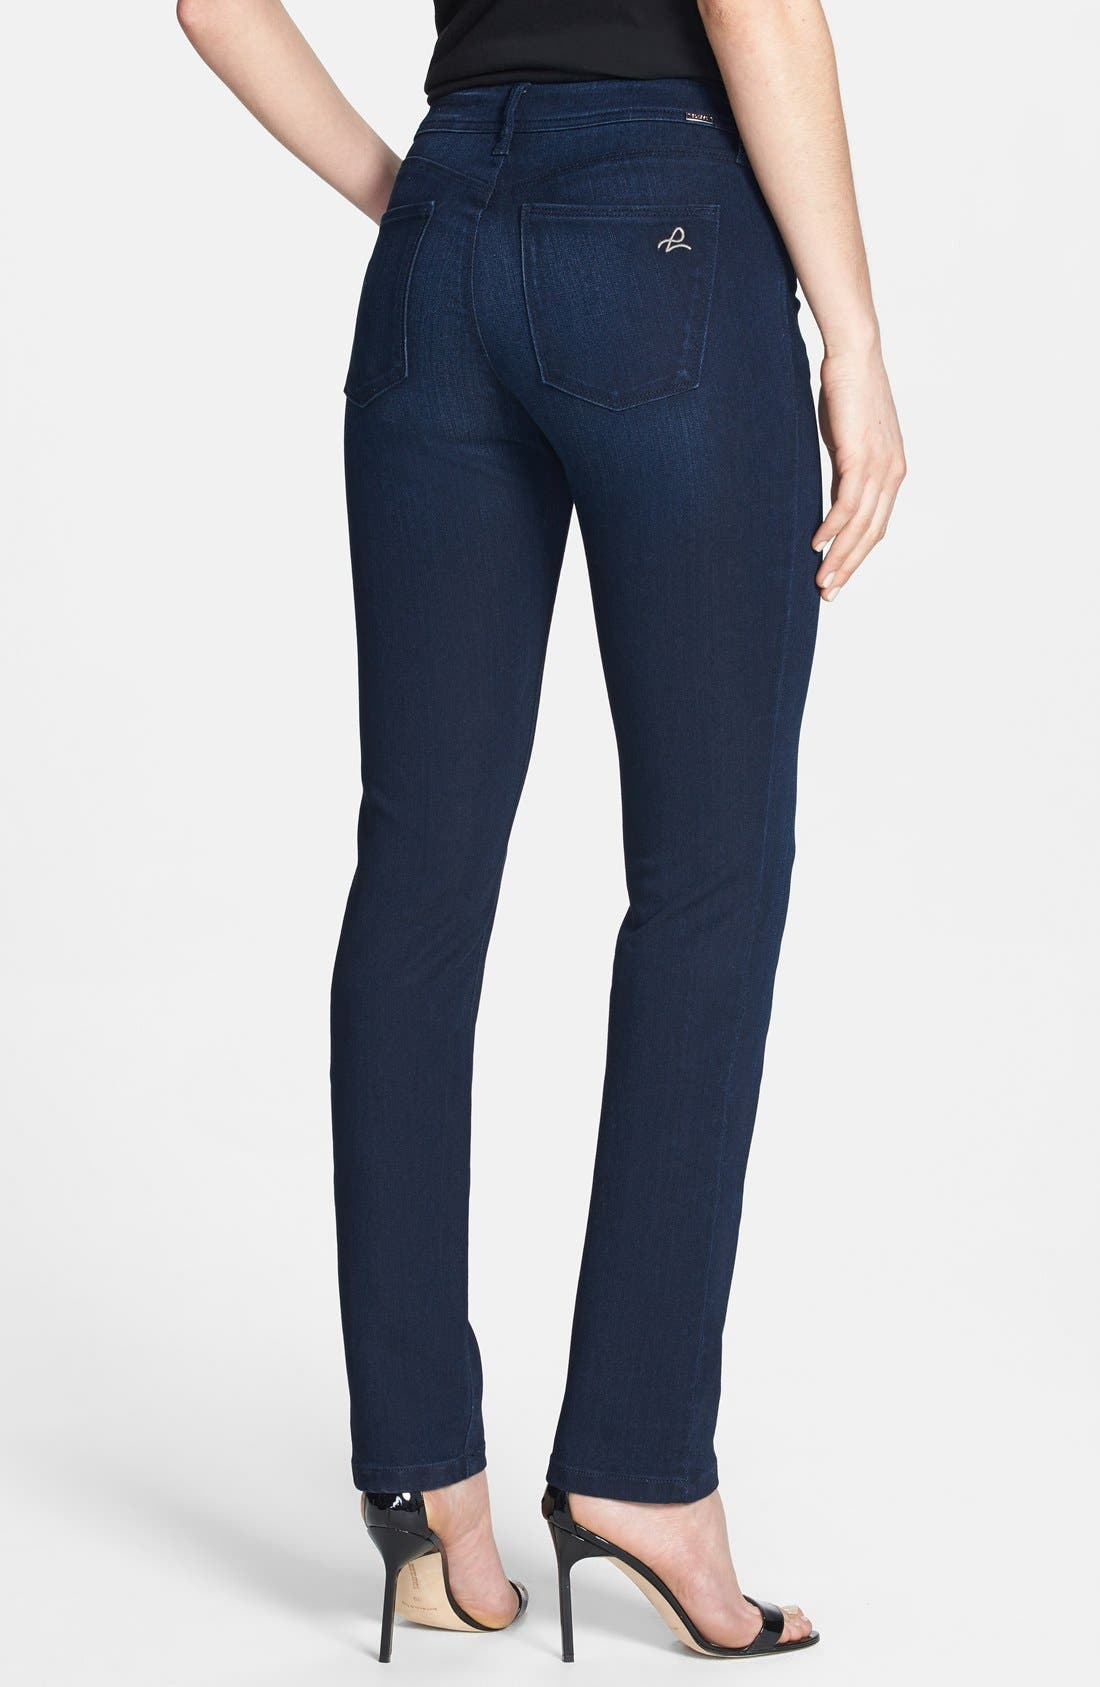 Alternate Image 2  - DL1961 'Coco' Curvy Straight Jeans (Wooster)